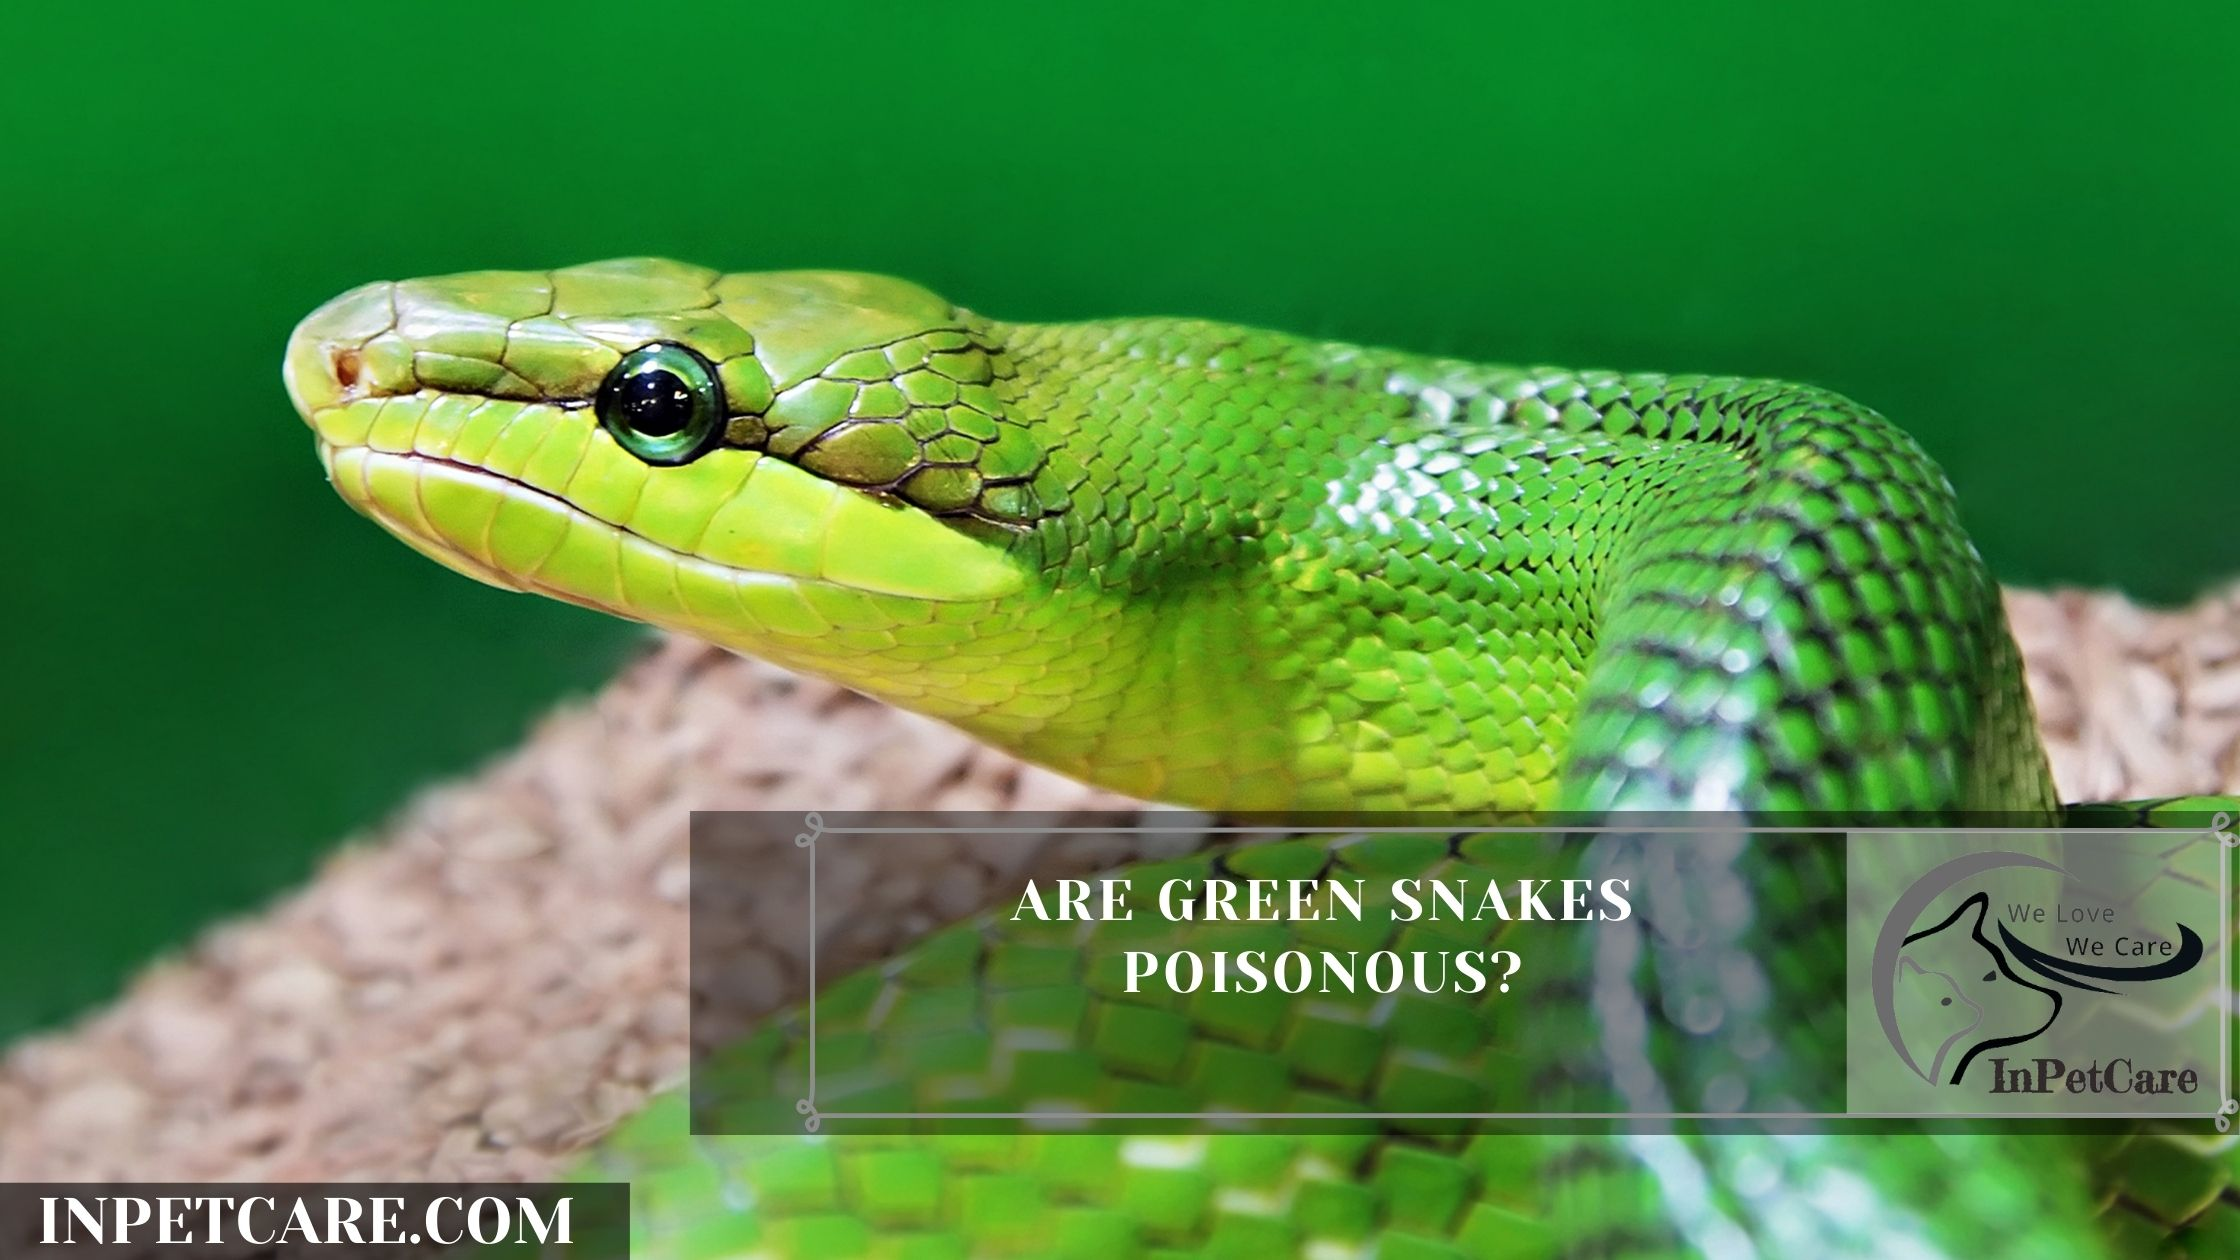 Are Green Snakes Poisonous?